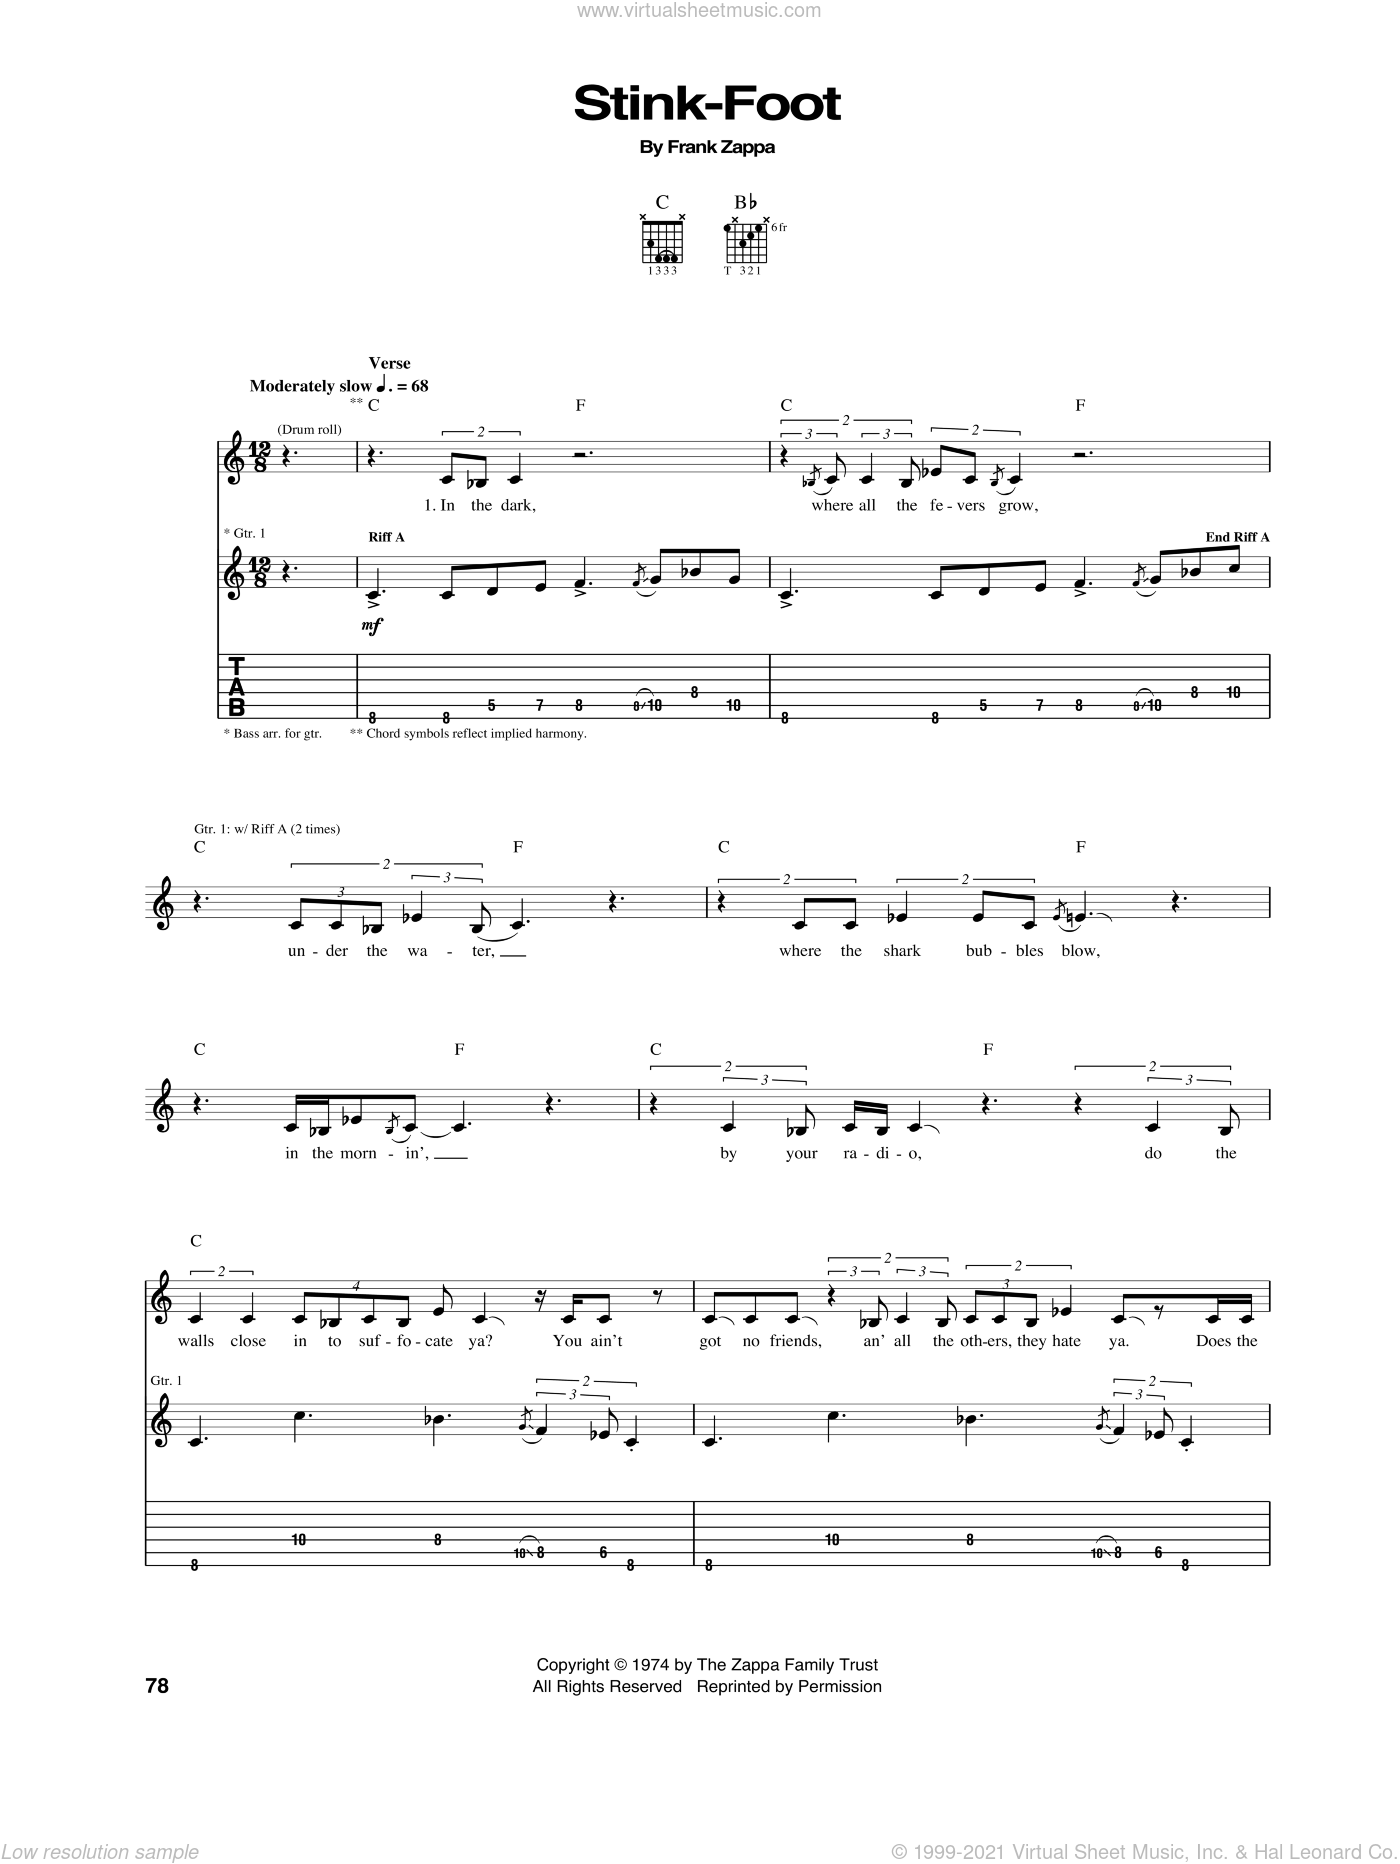 Stink-Foot sheet music for guitar (tablature) by Frank Zappa, intermediate